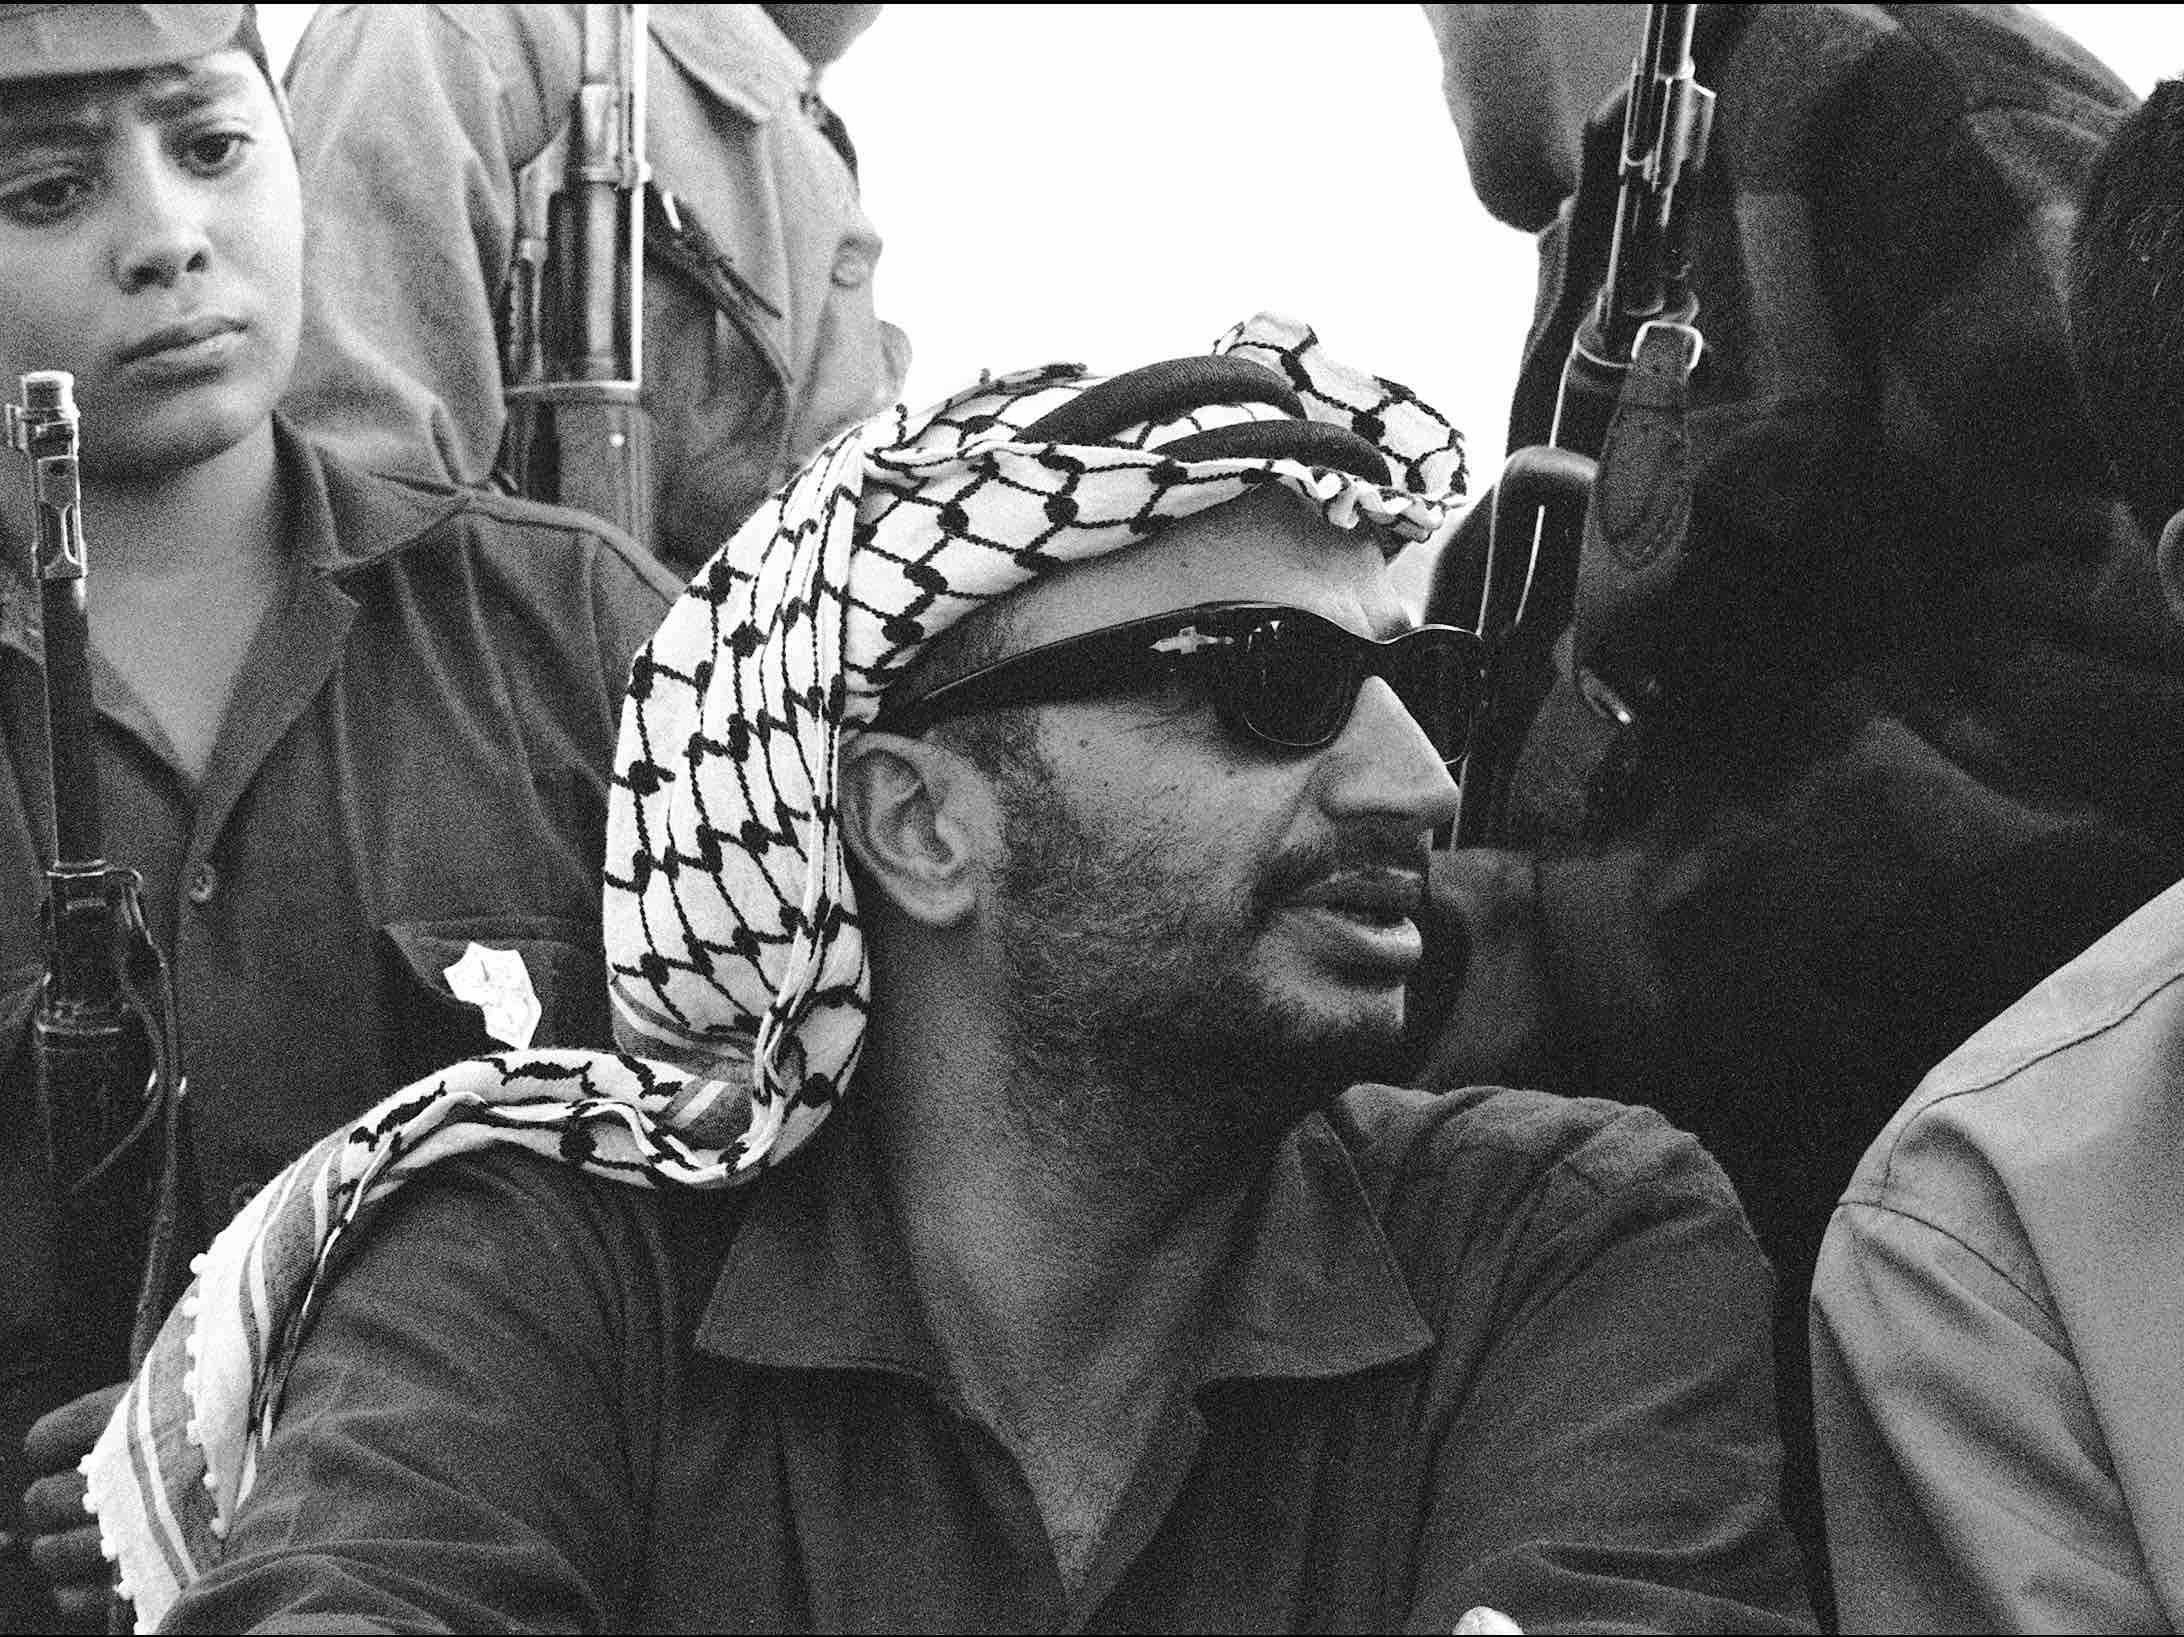 Yasser Arafat (STF / AFP / Getty)